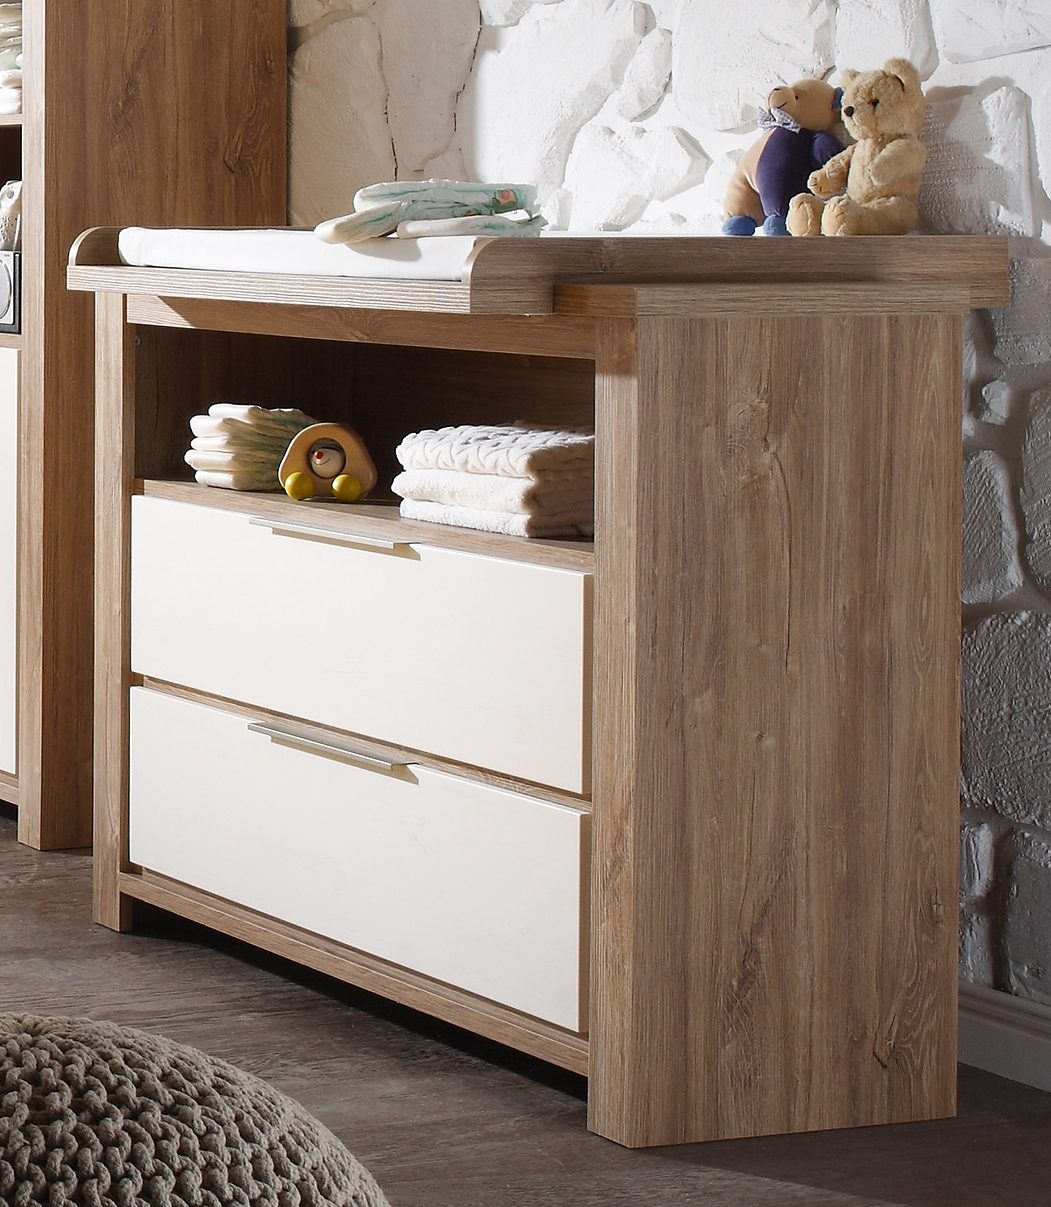 Wickelkommode zur Babymöbel Serie »Granny«, in stirling oak/ anderson pine